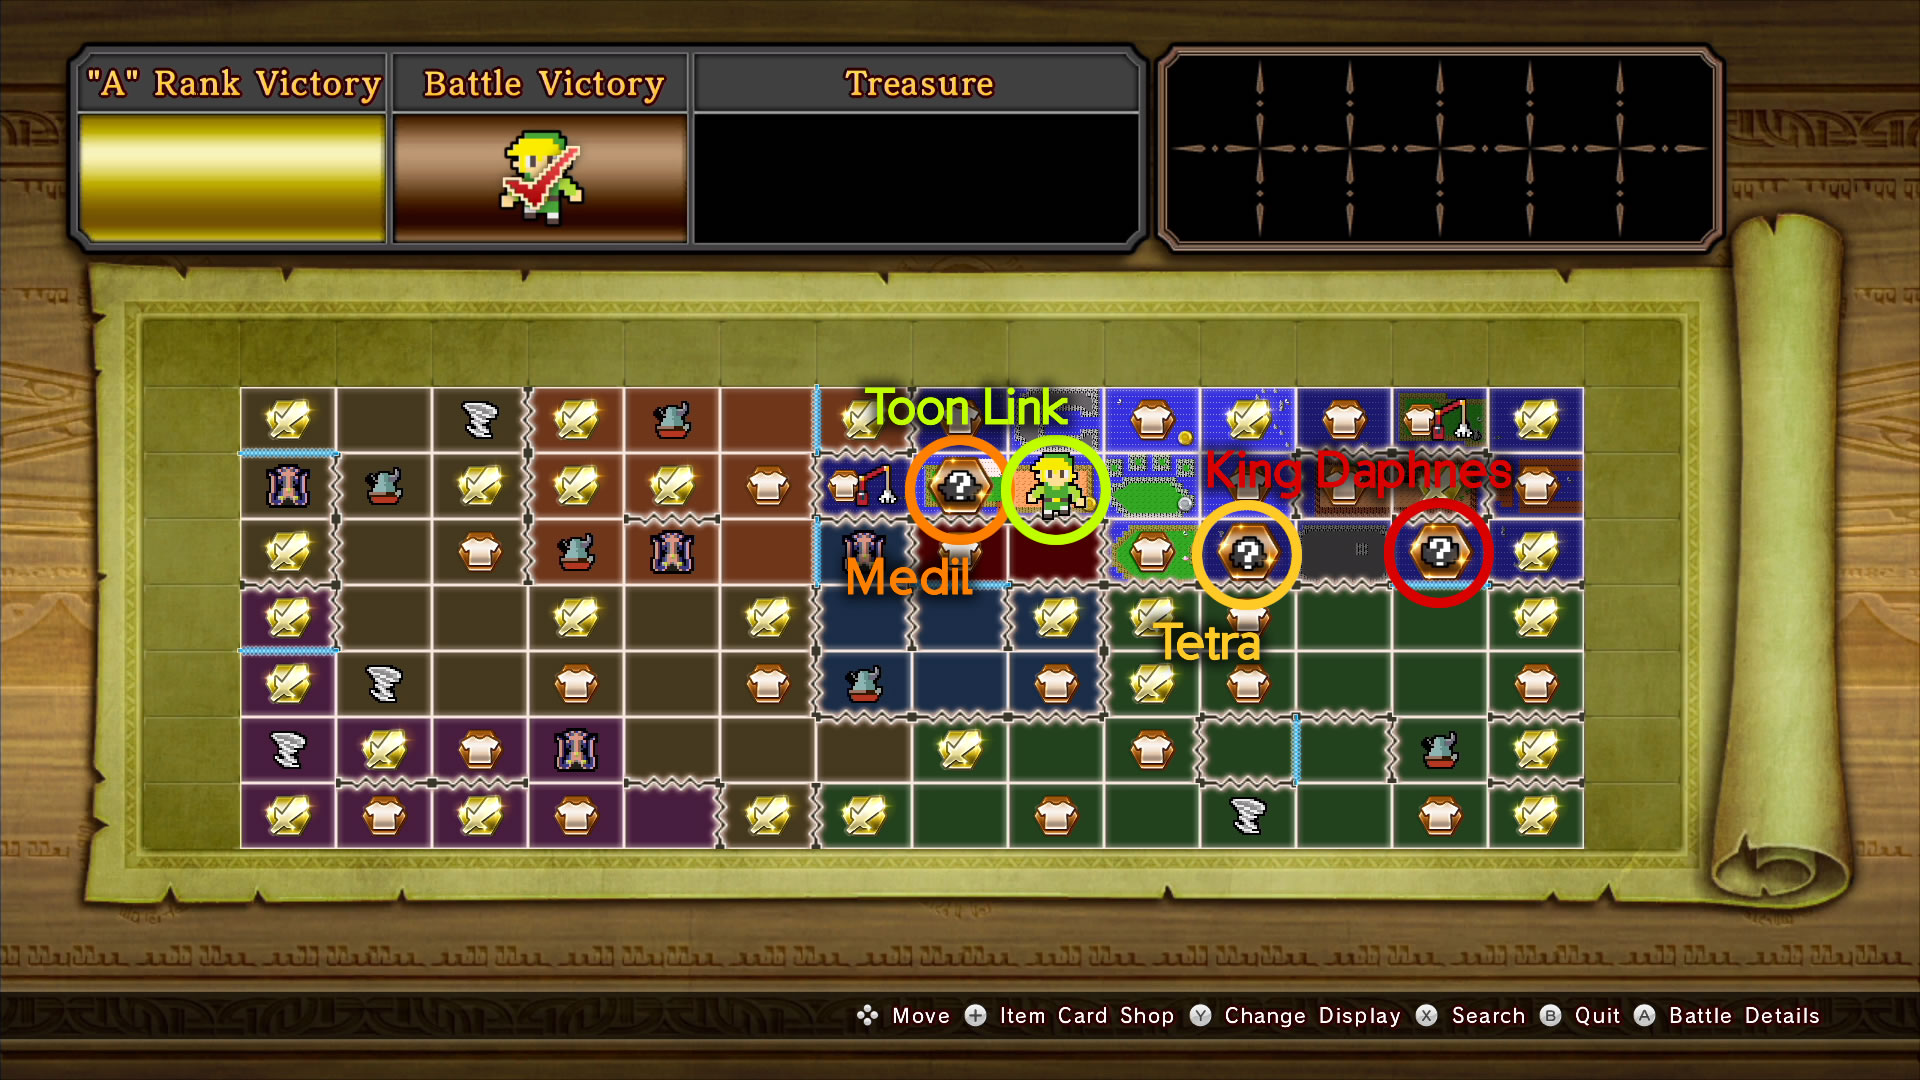 Hyrule Warriors Definitive Edition Character Unlock Guide How To Unlock All Characters Including Skull Kid Tingle Medli And Others Rpg Site